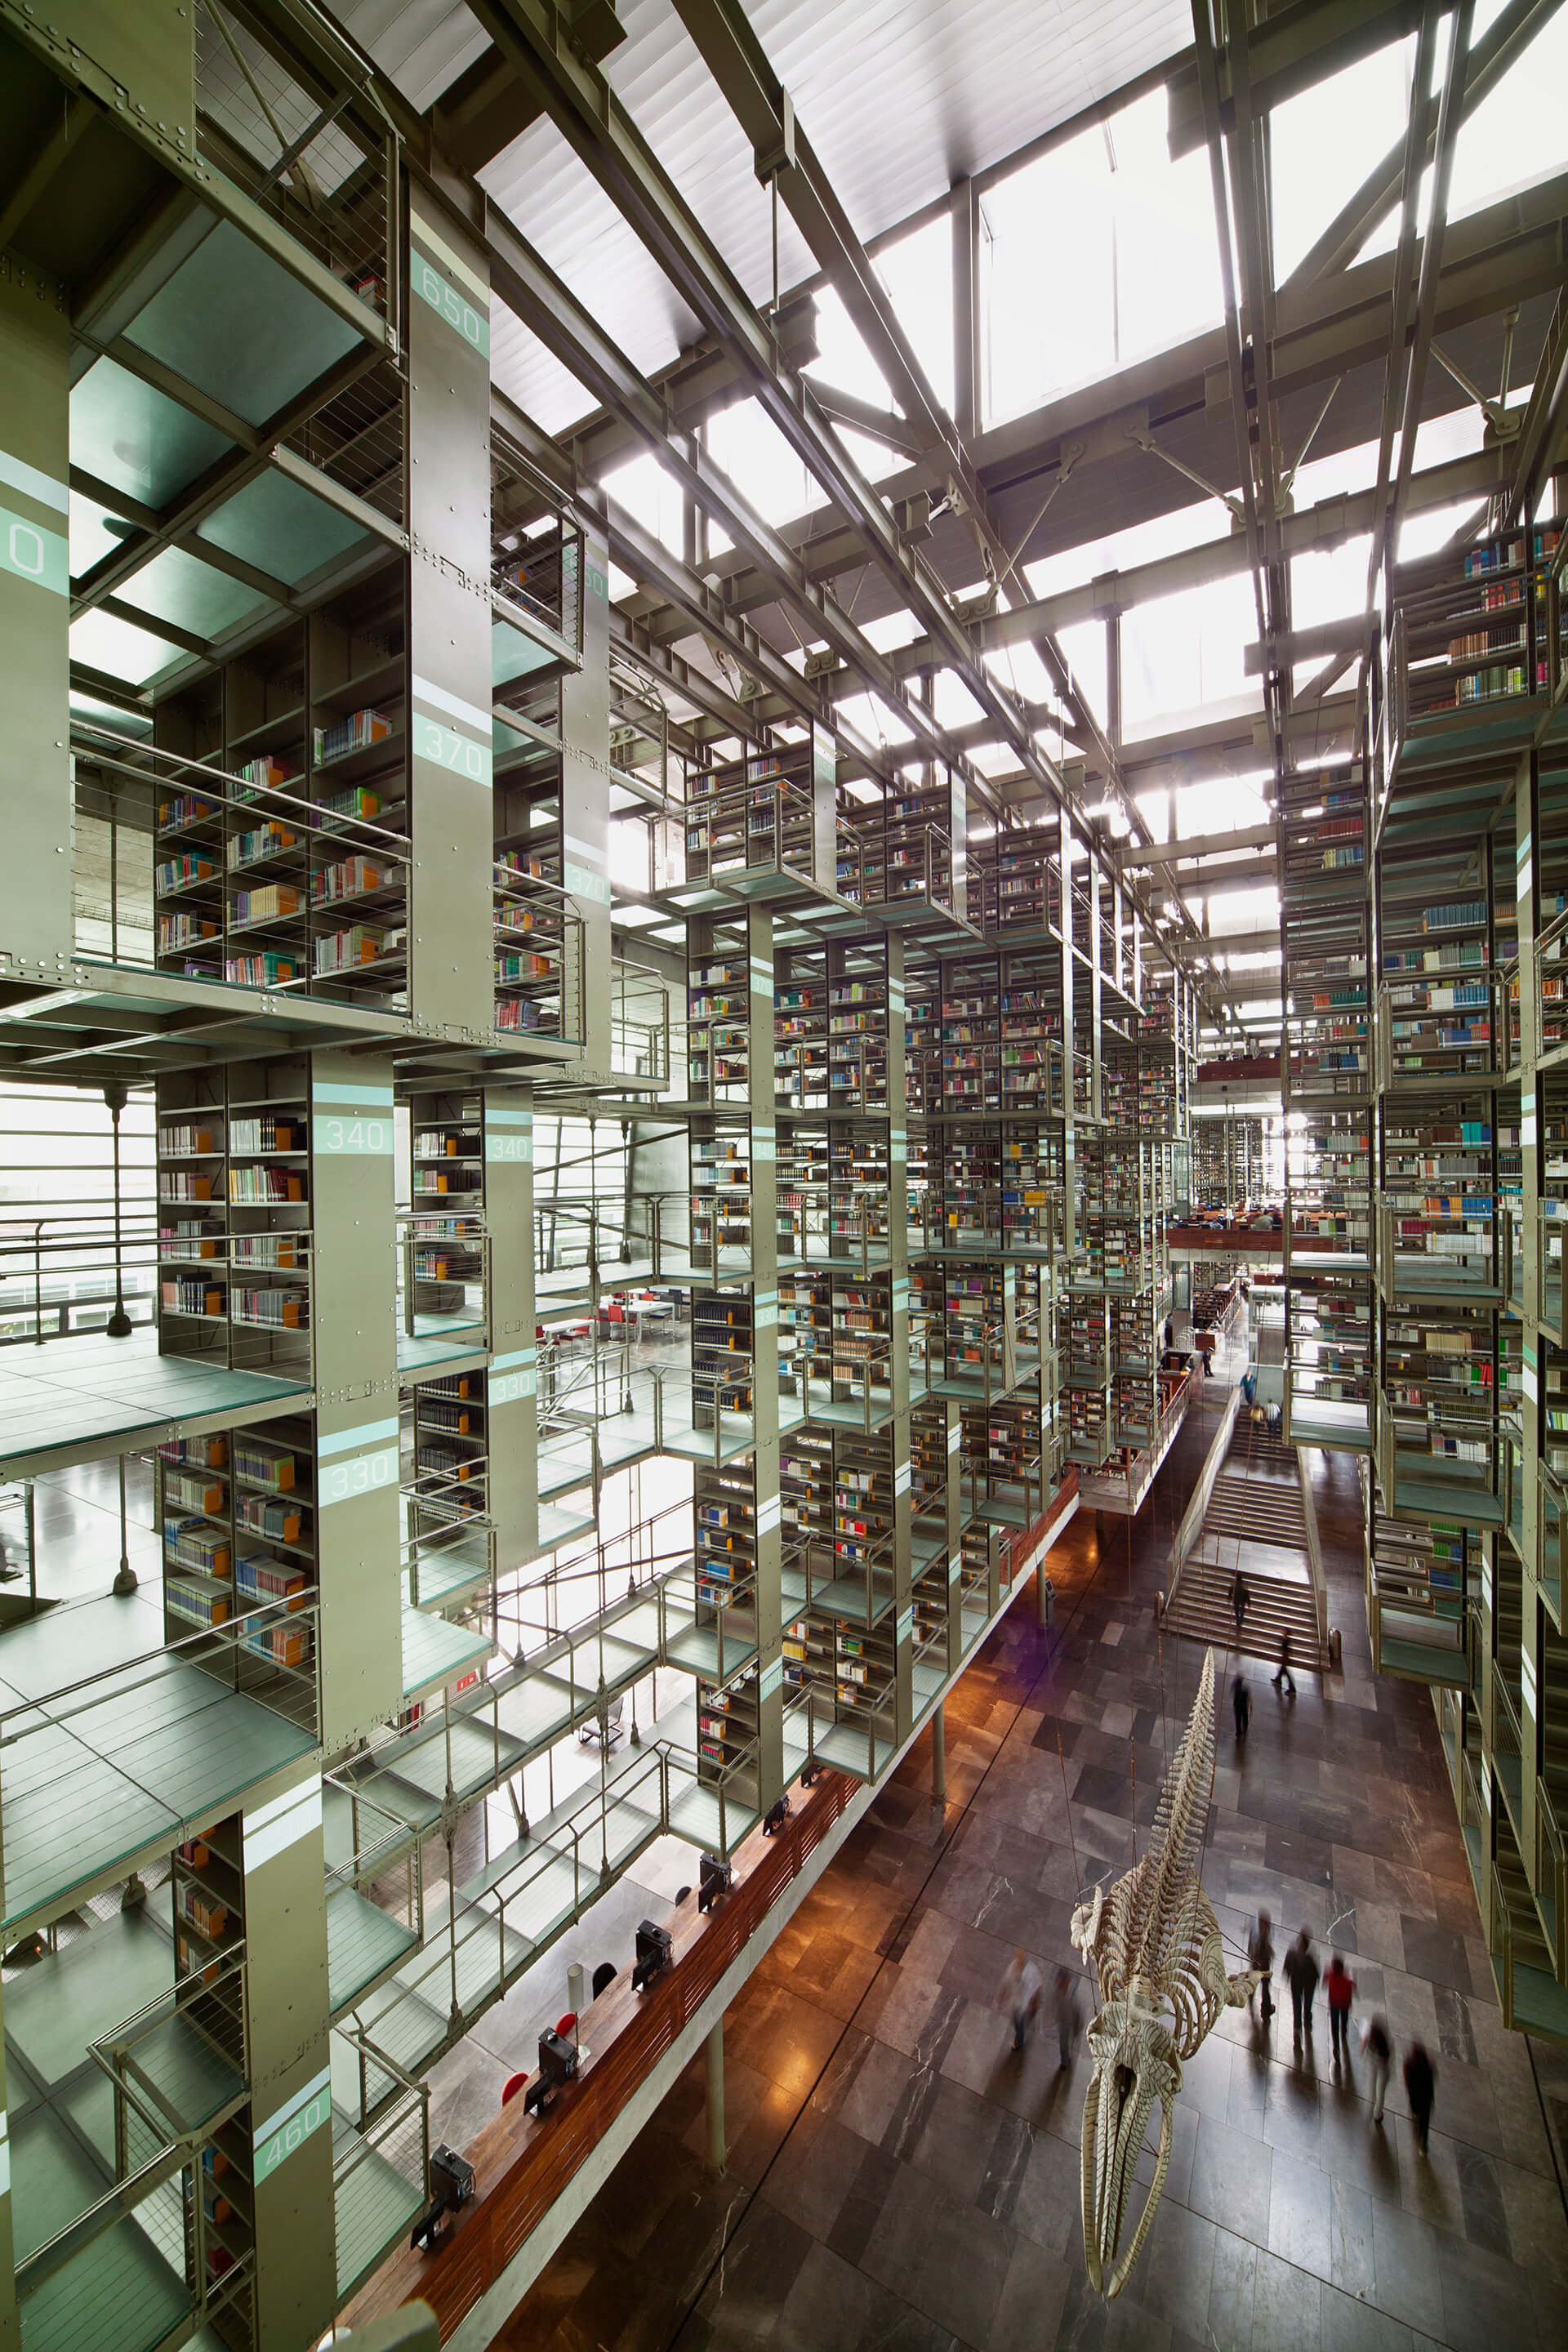 Alberto Kalach, Vasconcelos Library, Mexico City, 2008 (p. 393) | Modern Architecture: A Critical History by Kenneth Frampton | STIRworld